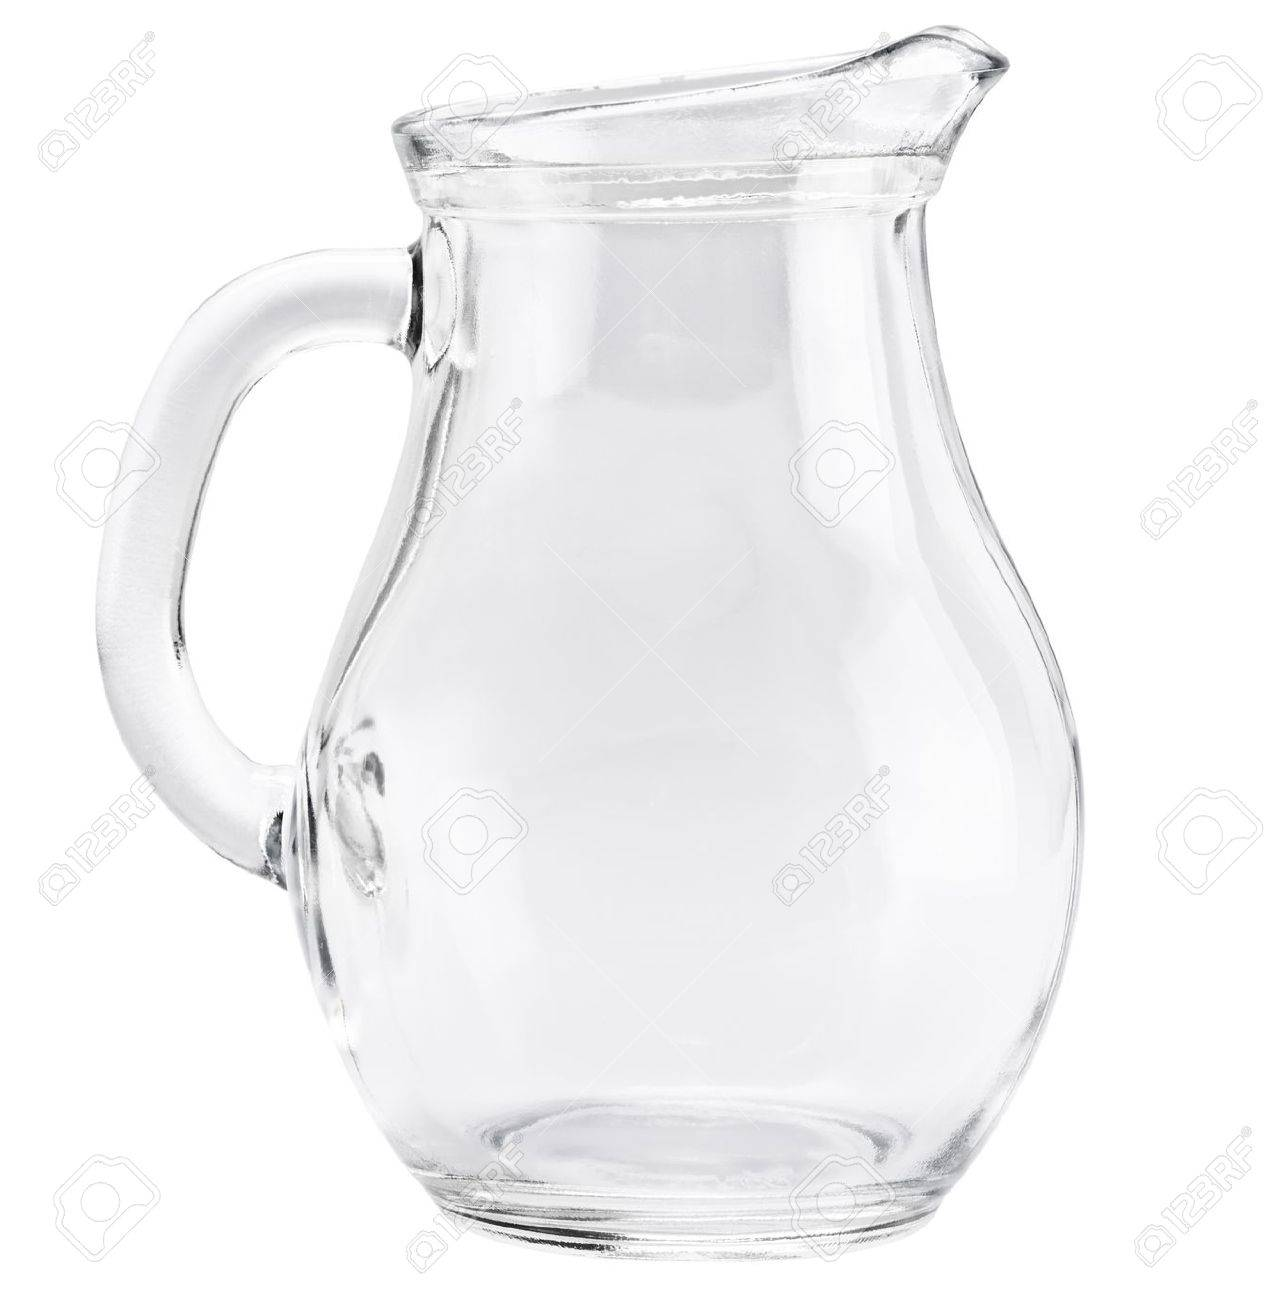 Glass jug isolated on a white background - 12975948